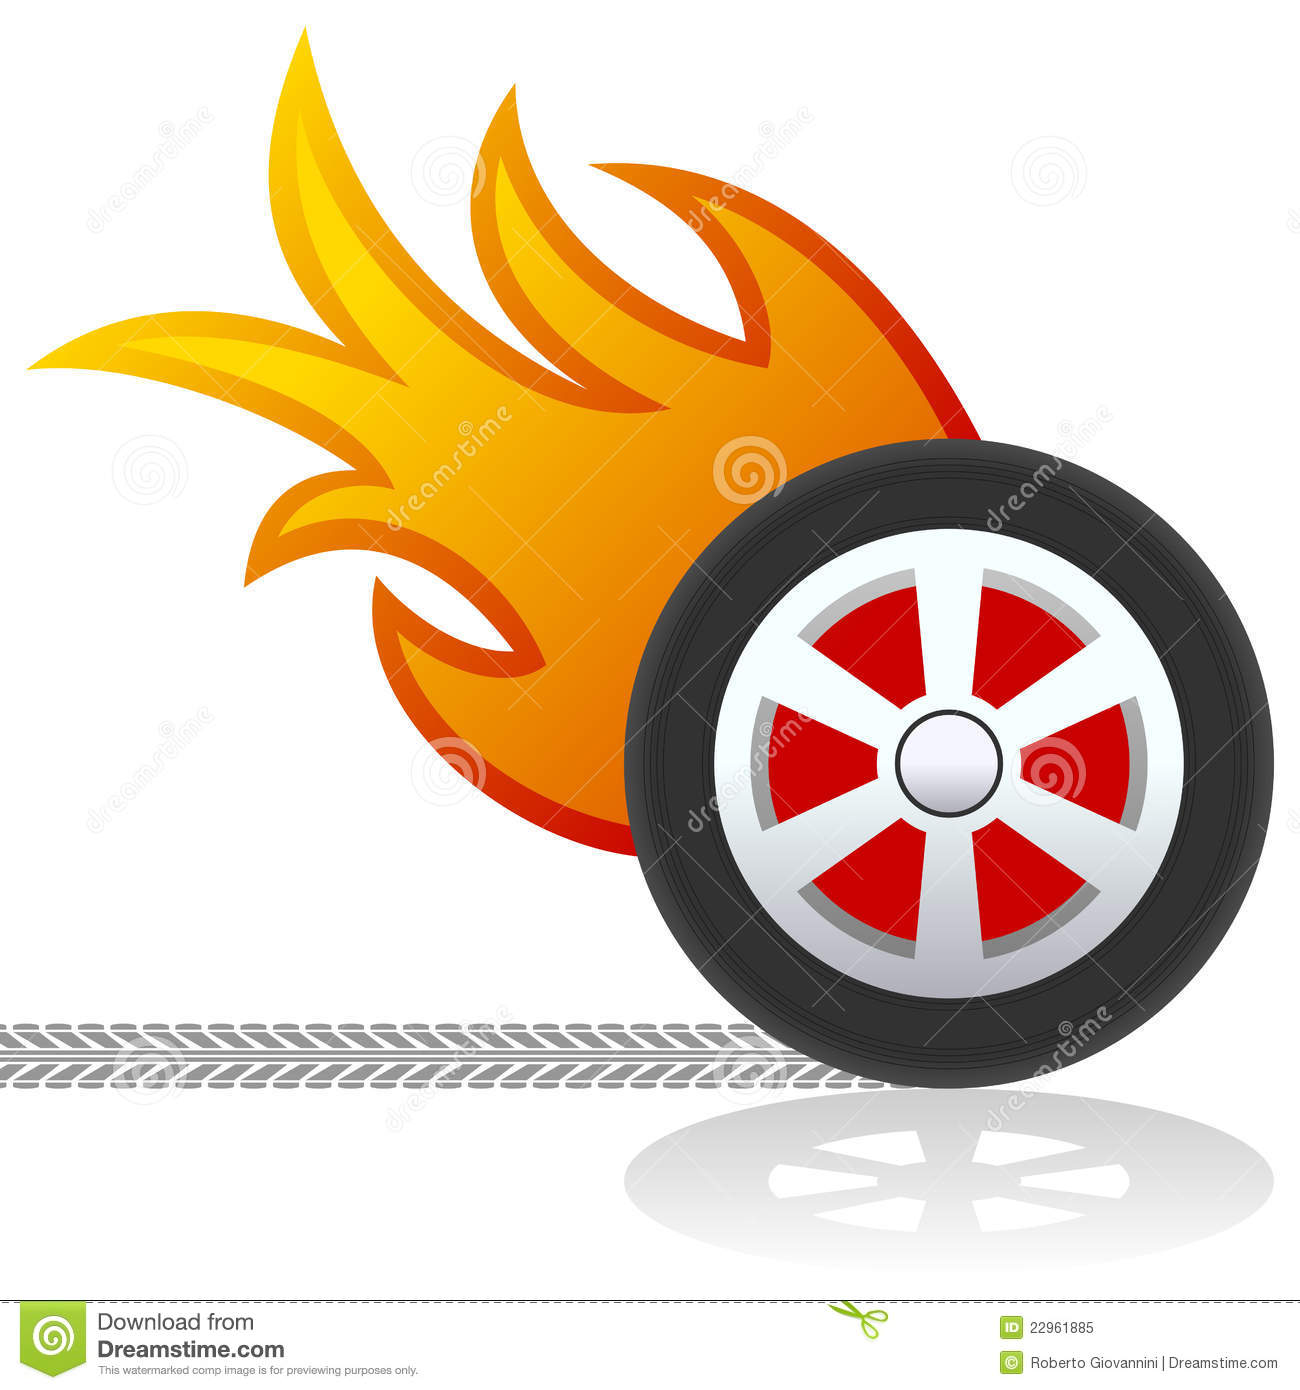 hot-wheels-logo-clip-art-hot-wheels-logo-clip-art-Z9BFz9-clipart.jpg